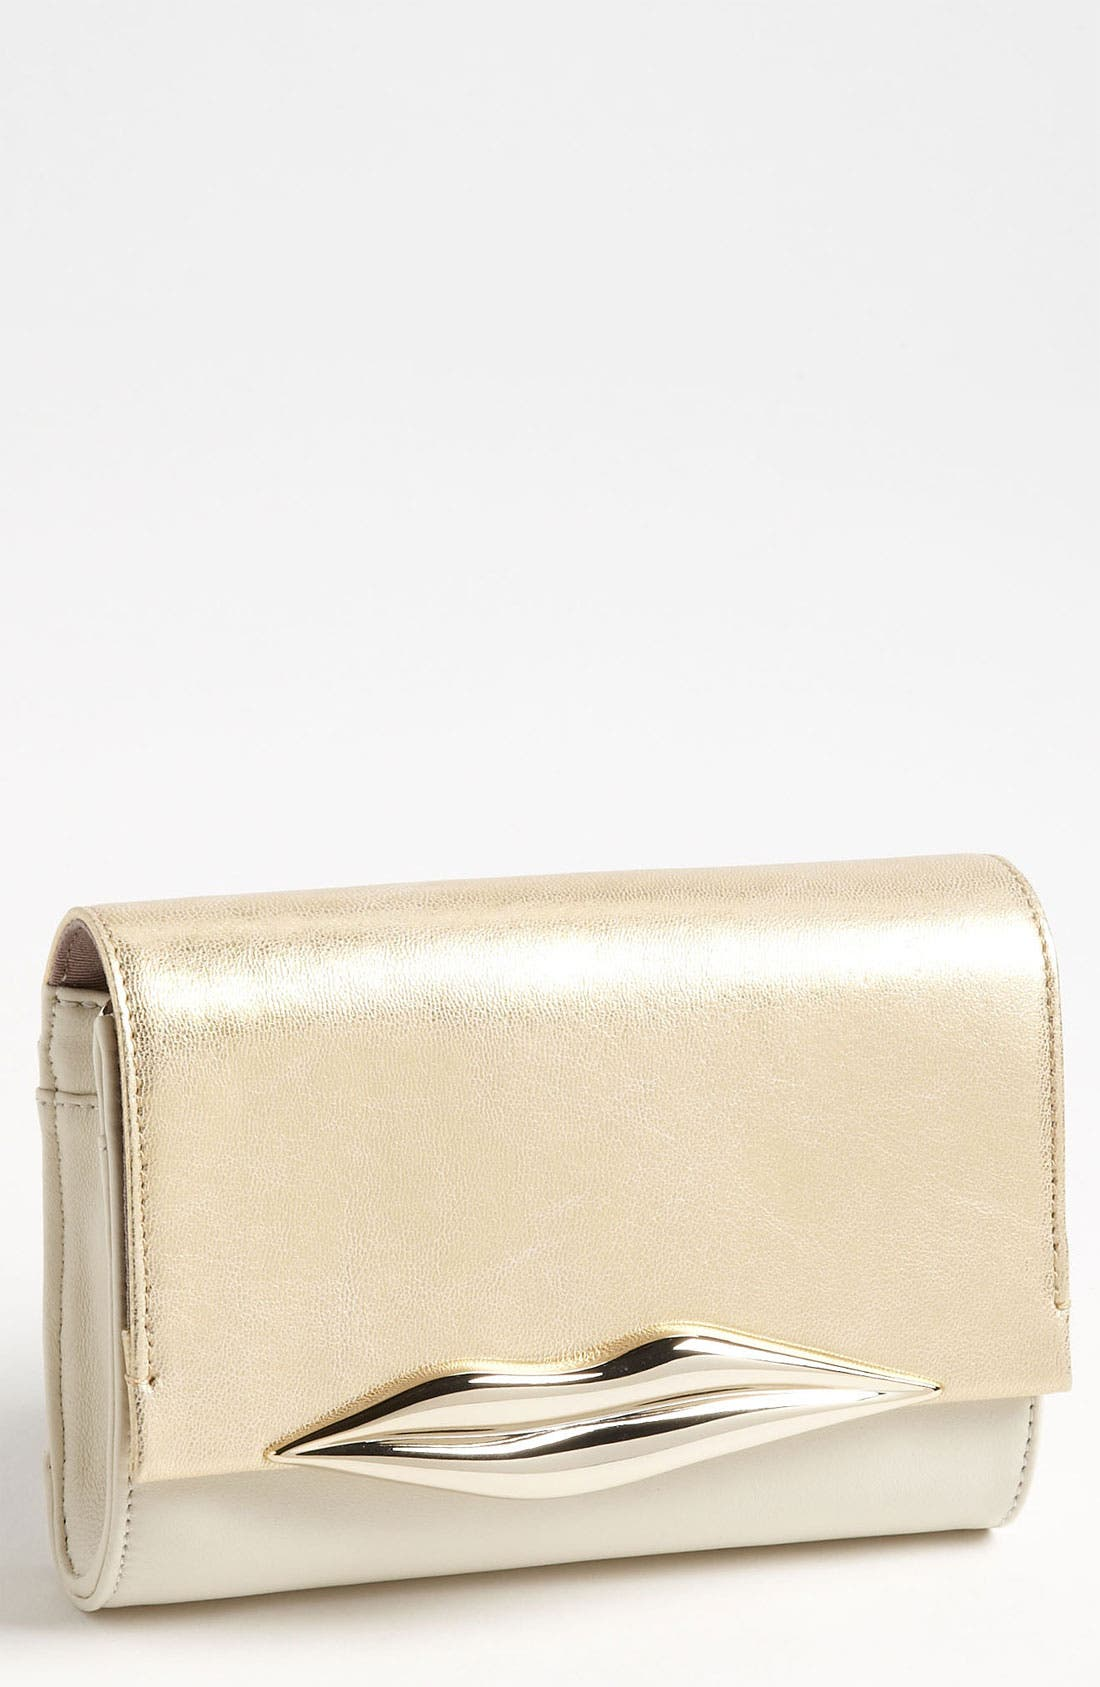 Main Image - Diane von Furstenberg 'Lips - Mini' Metallic Leather Clutch